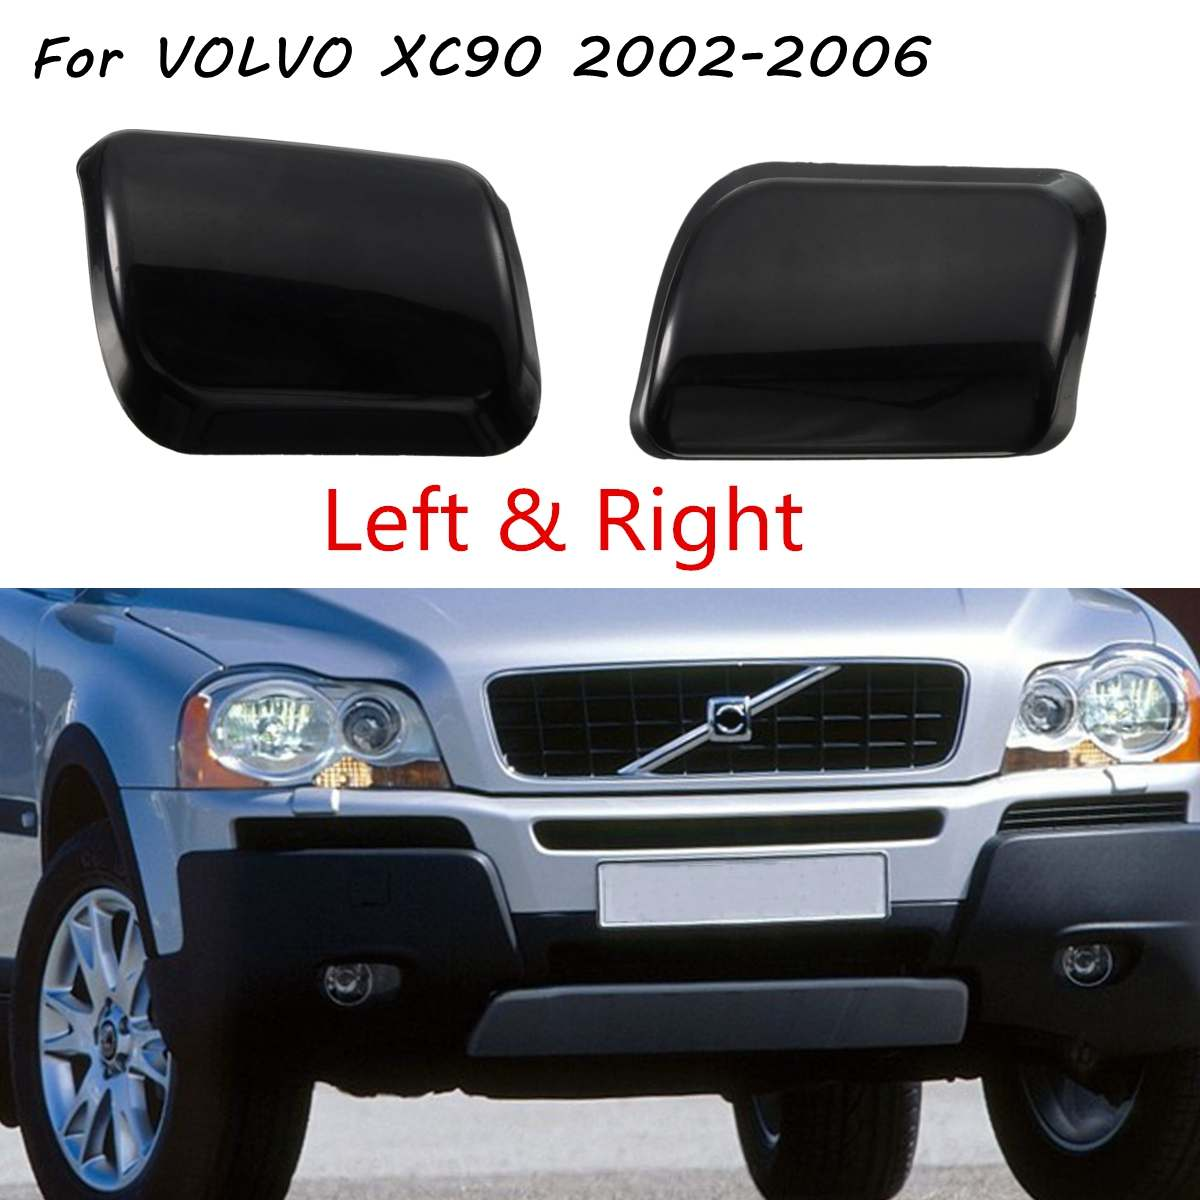 Front Bumper Headlamp Headlight Lamp Washer Jet Nozzle Cover Cap For VOLVO <font><b>XC90</b></font> 2002 <font><b>2003</b></font> 2004 2005 2006 image